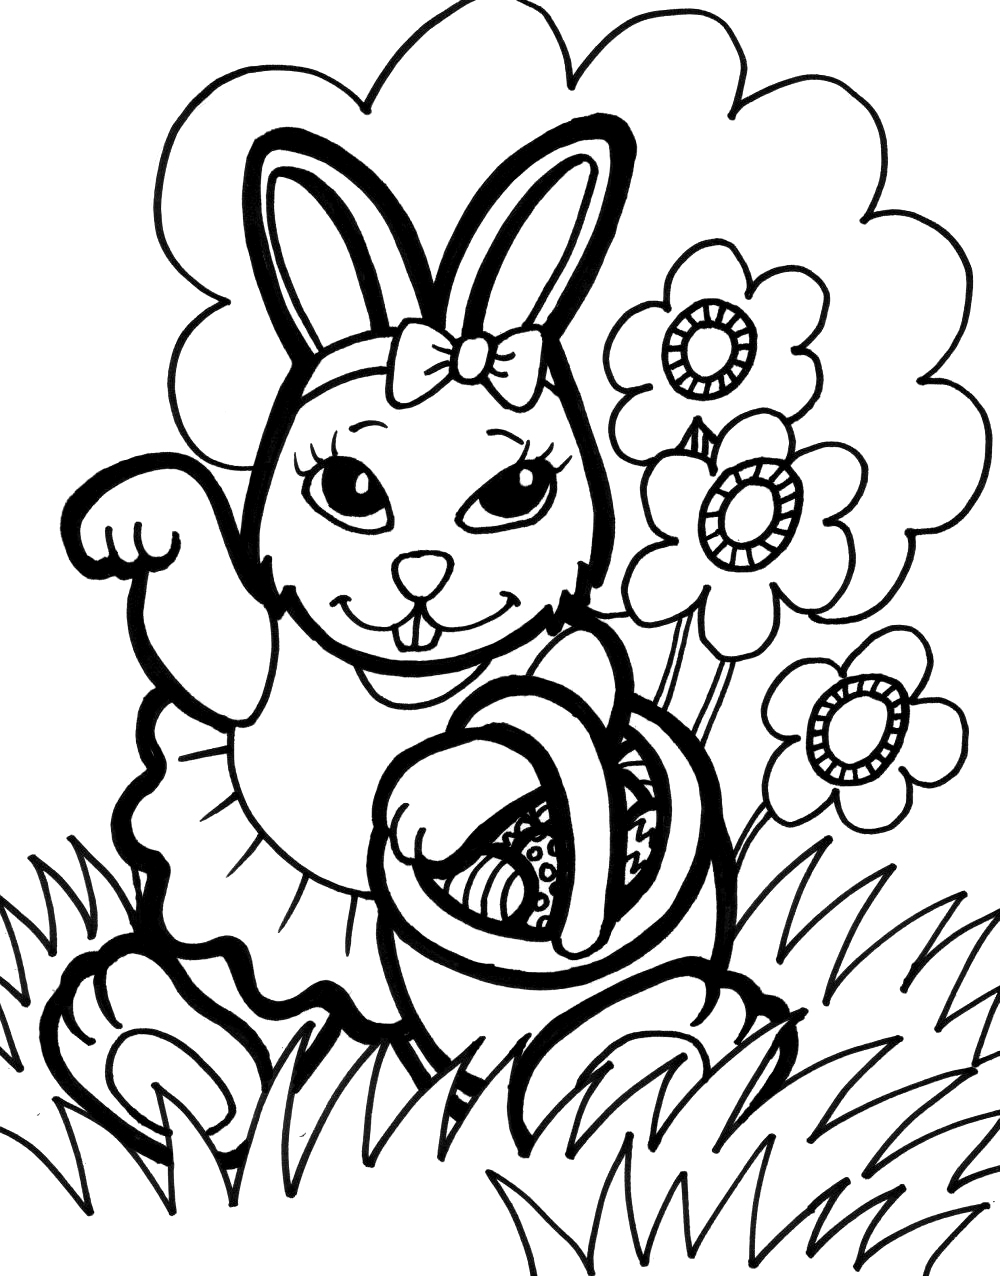 rabbit color pages free printable rabbit coloring pages for kids color pages rabbit 1 2